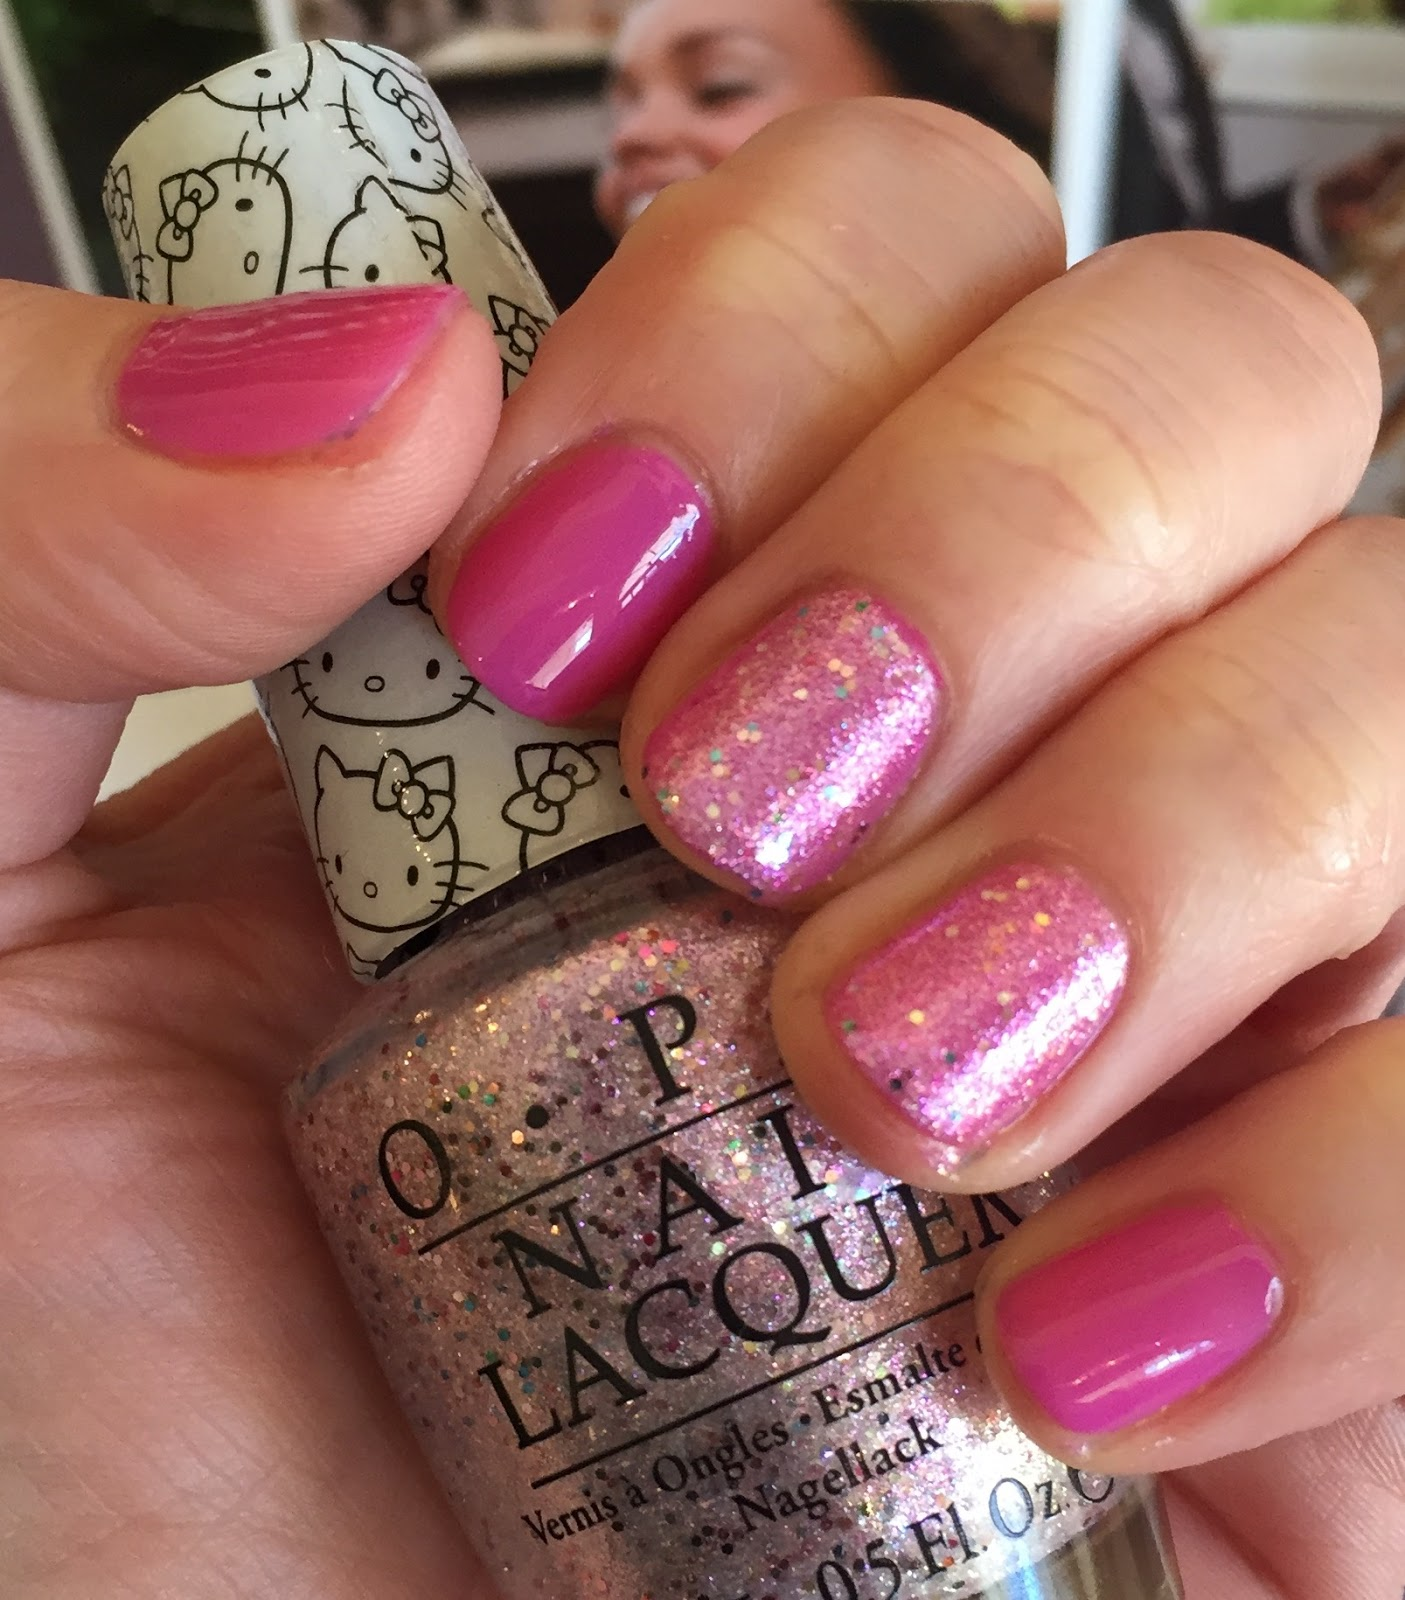 Can recommend Opi nail polish pink collection thanks for